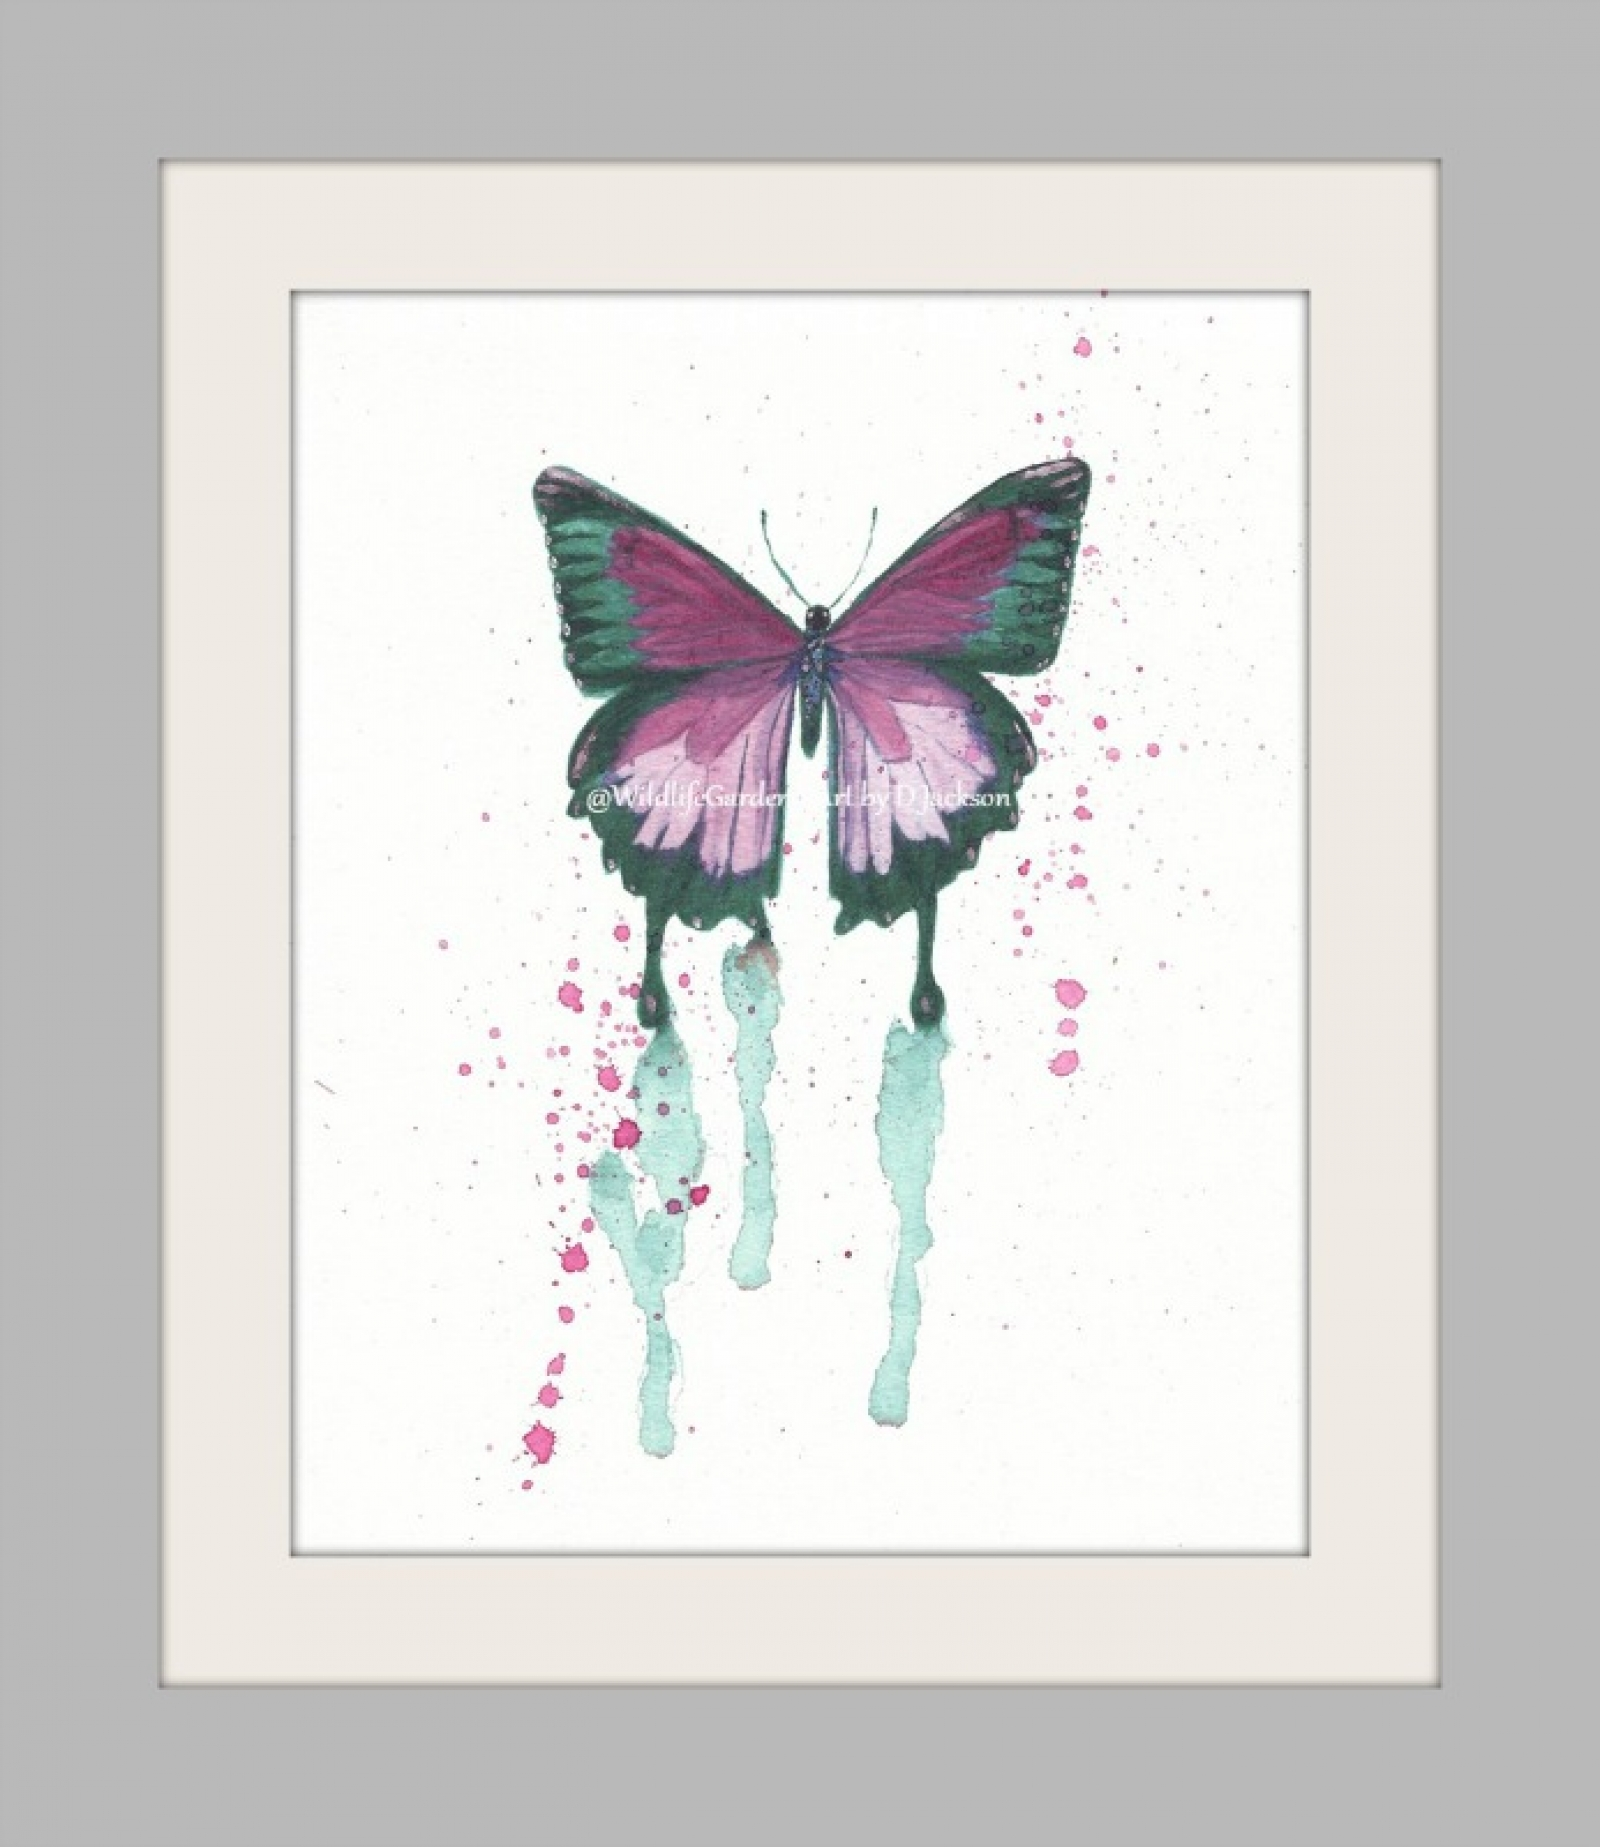 Butterfly Watercolor Art Prints Pink Green Set Of 2